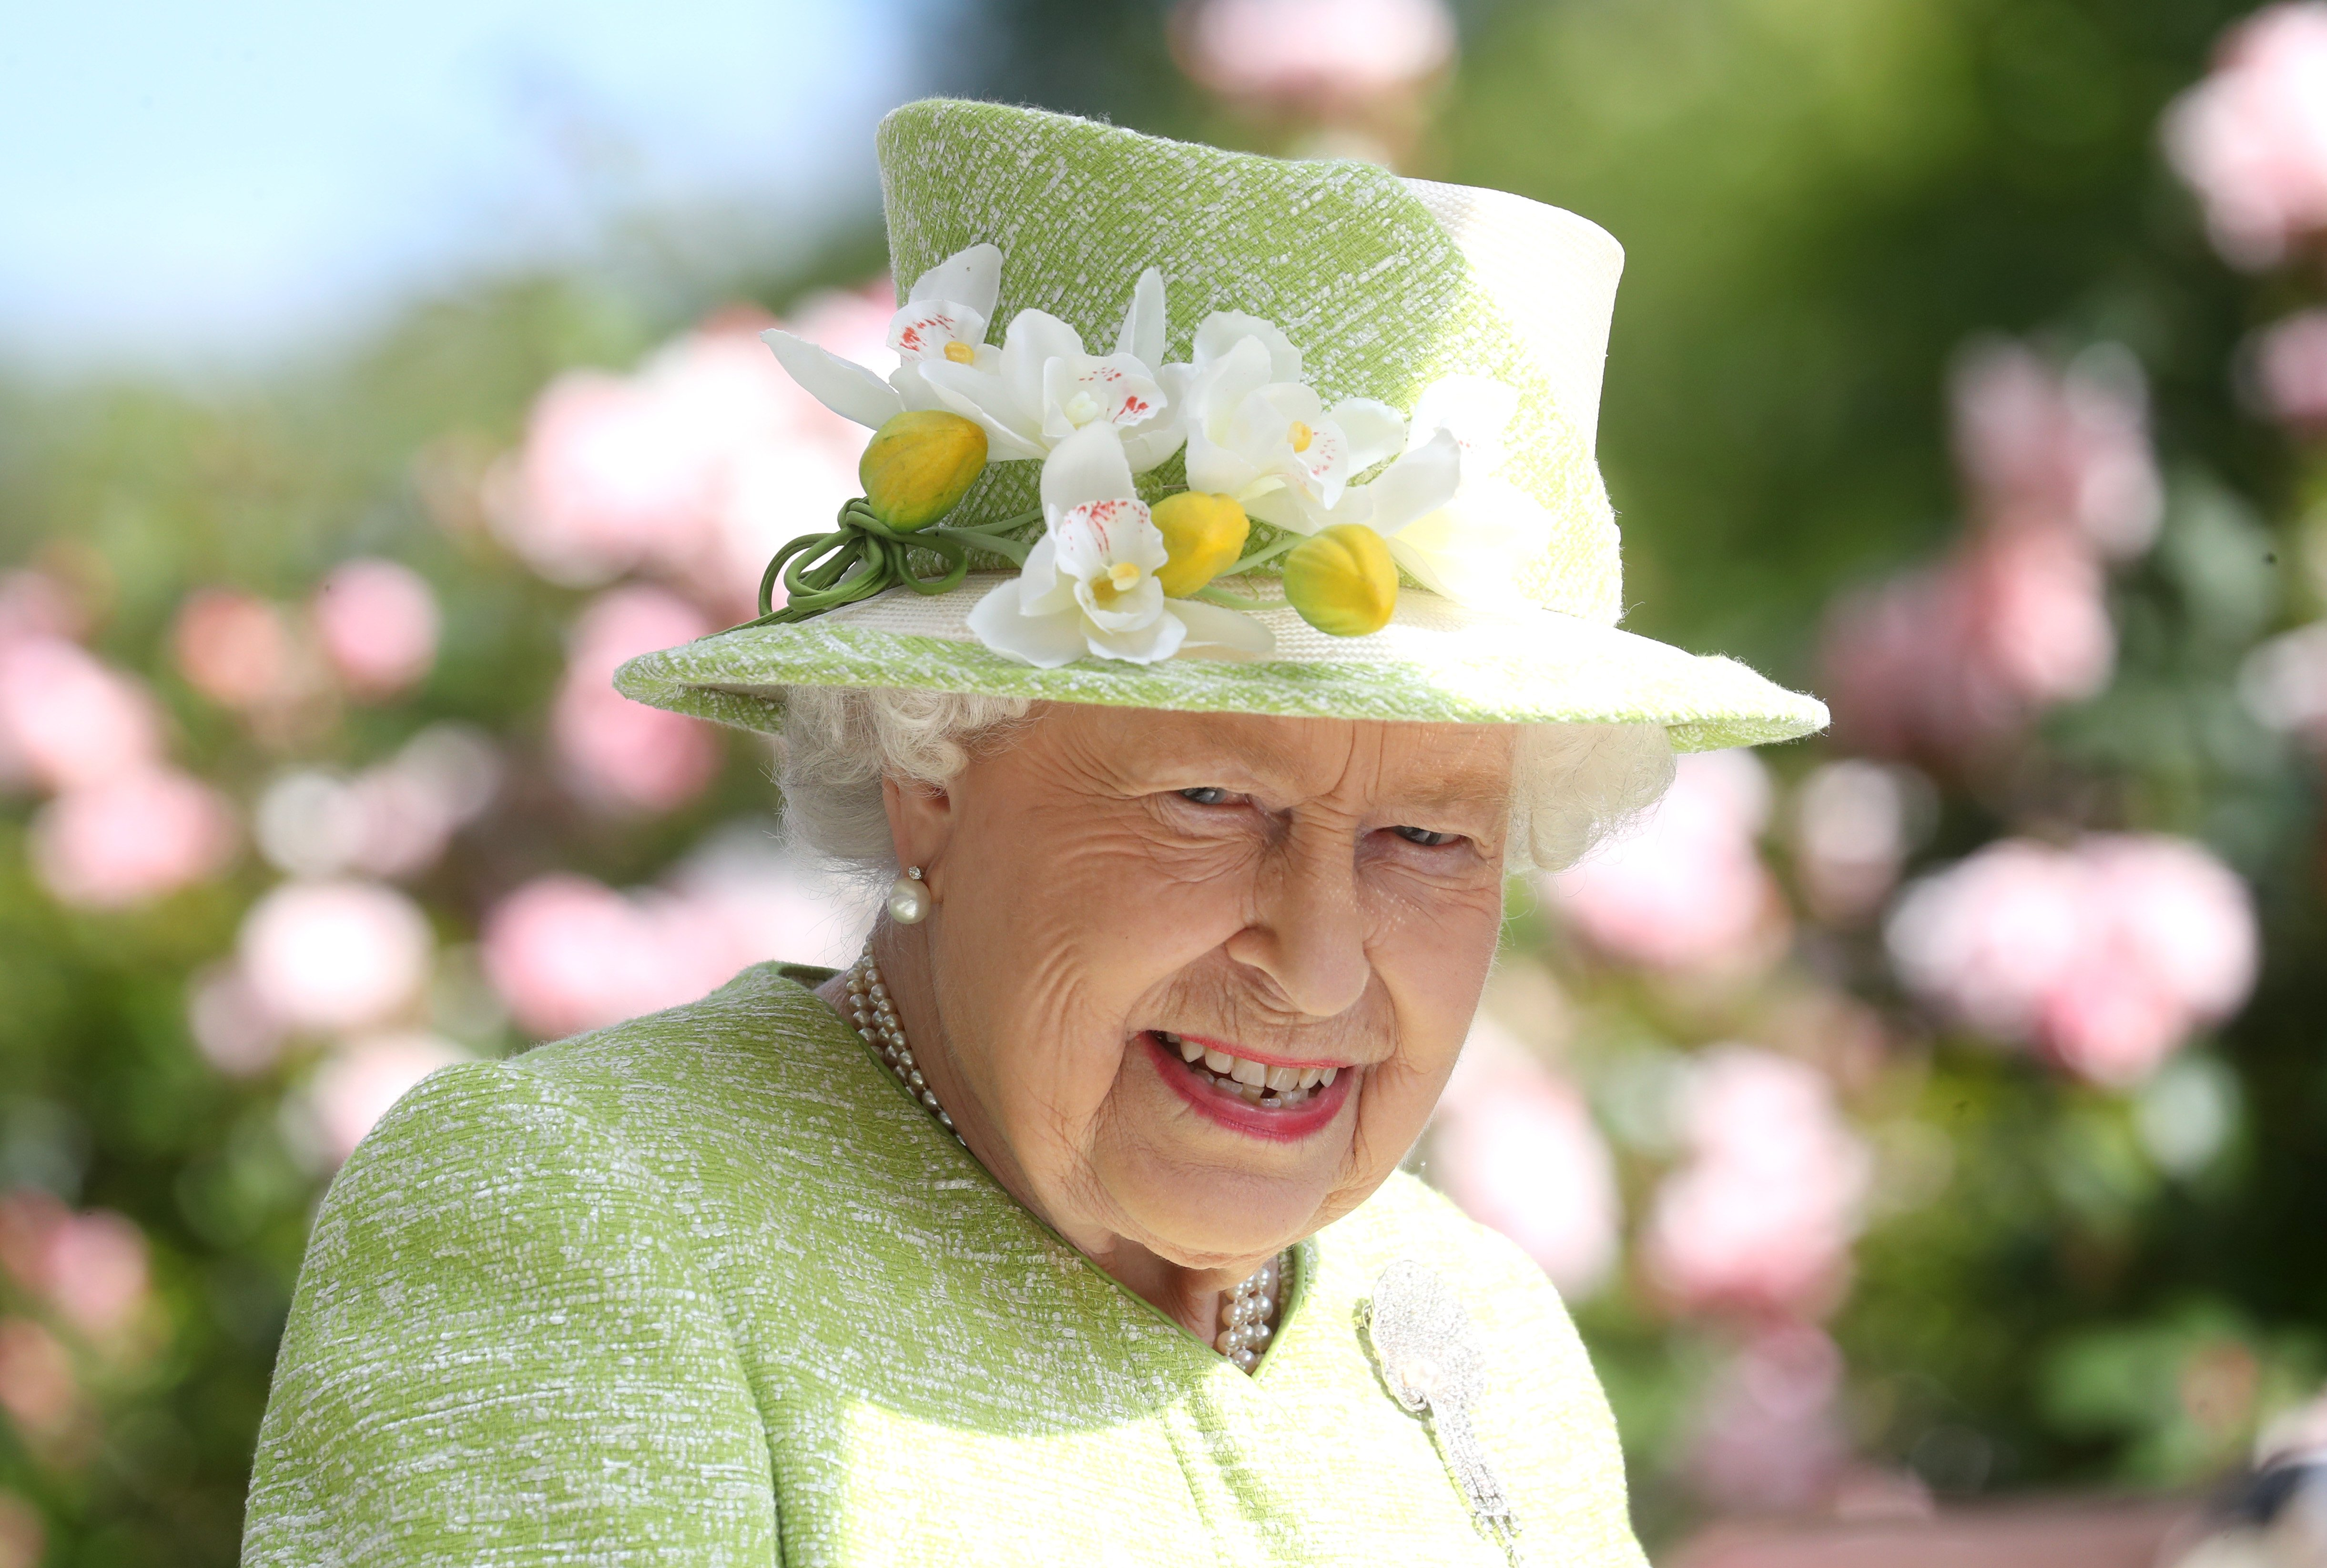 Queen Elizabeth attends day five of Royal Ascot at Ascot Racecourse on June 22, 2019 in Ascot, England | Photo: Getty Images